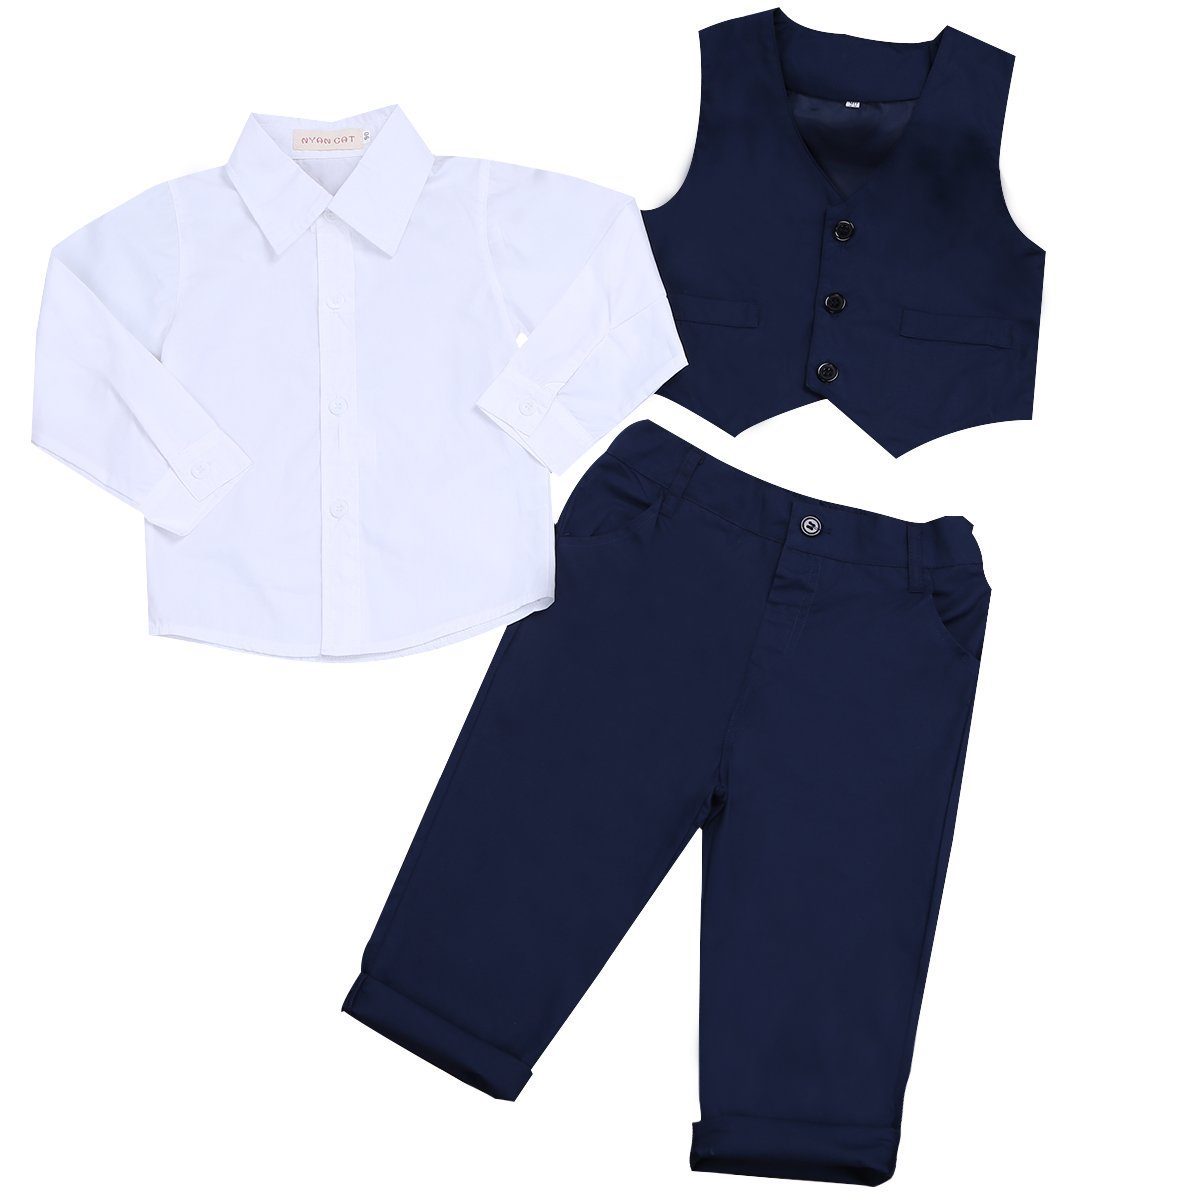 CHICTRY Toddler Baby Boys Navy Gentlemen Style Waistcoat Suit Outfits 3 Pieces Set